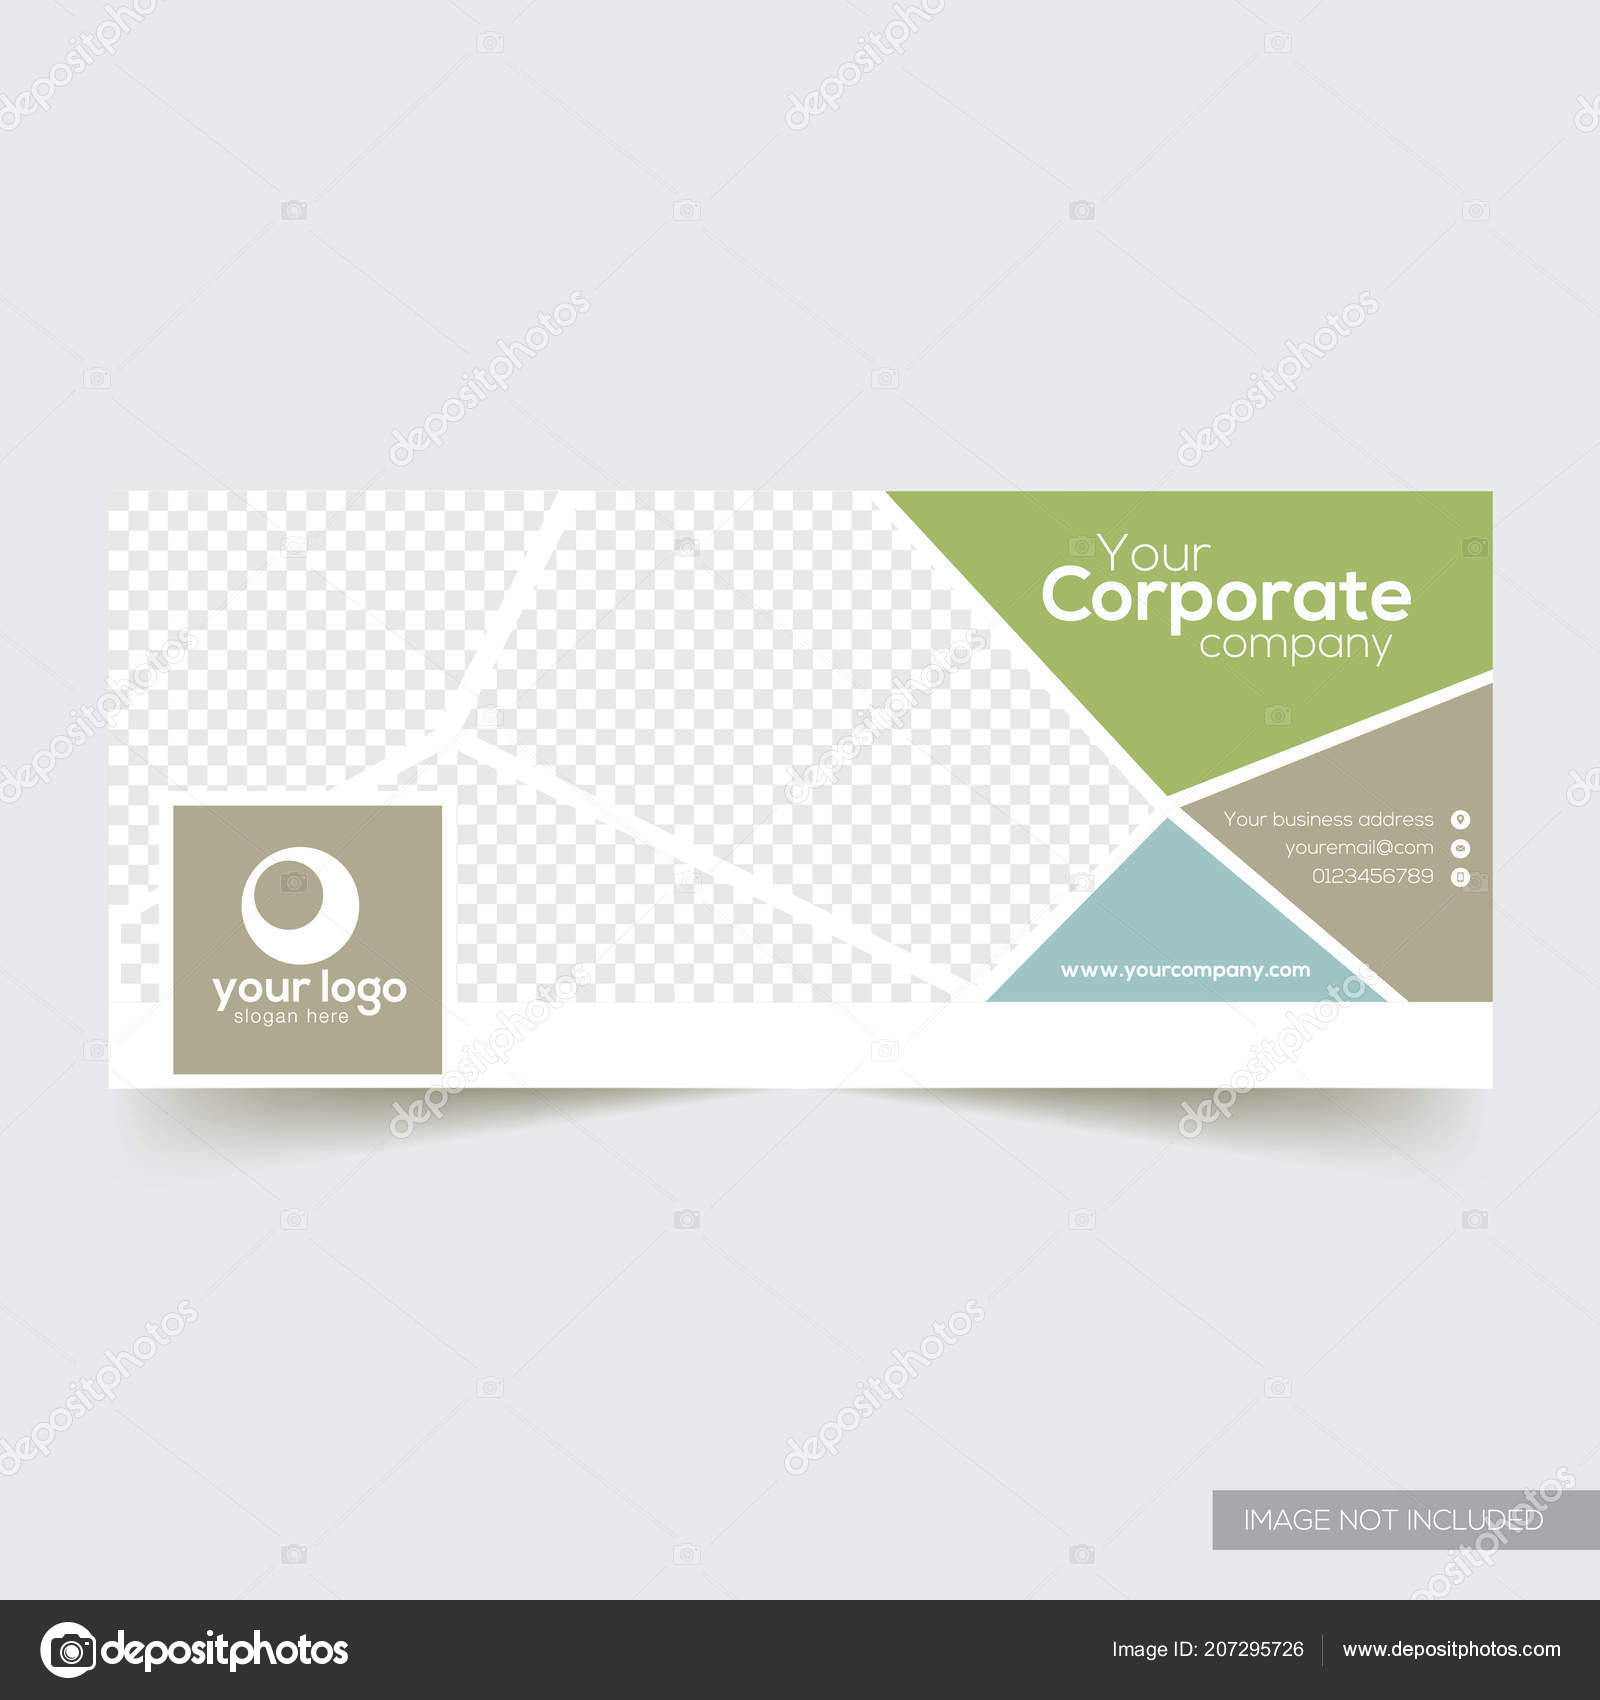 Corporate Facebook Timeline Cover Template Image Vectorielle